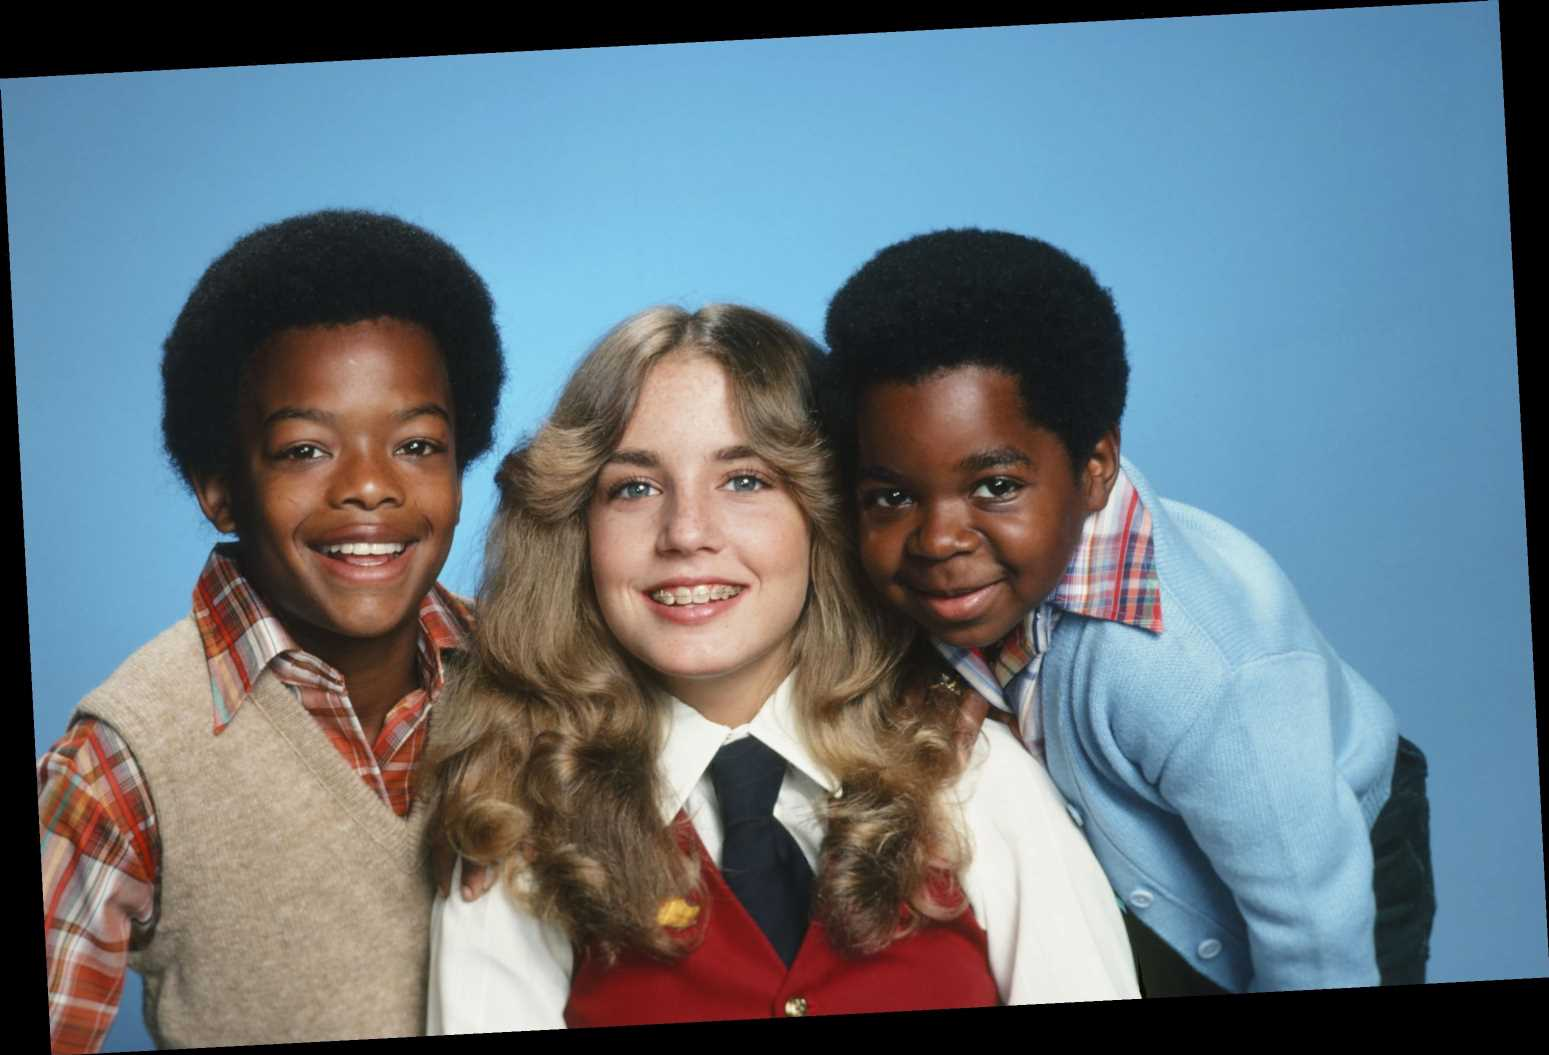 Diff'rent Strokes' Todd Bridges Remembers Dana Plato on What Would've Been Her 55th Birthday: 'You're Free My friend'